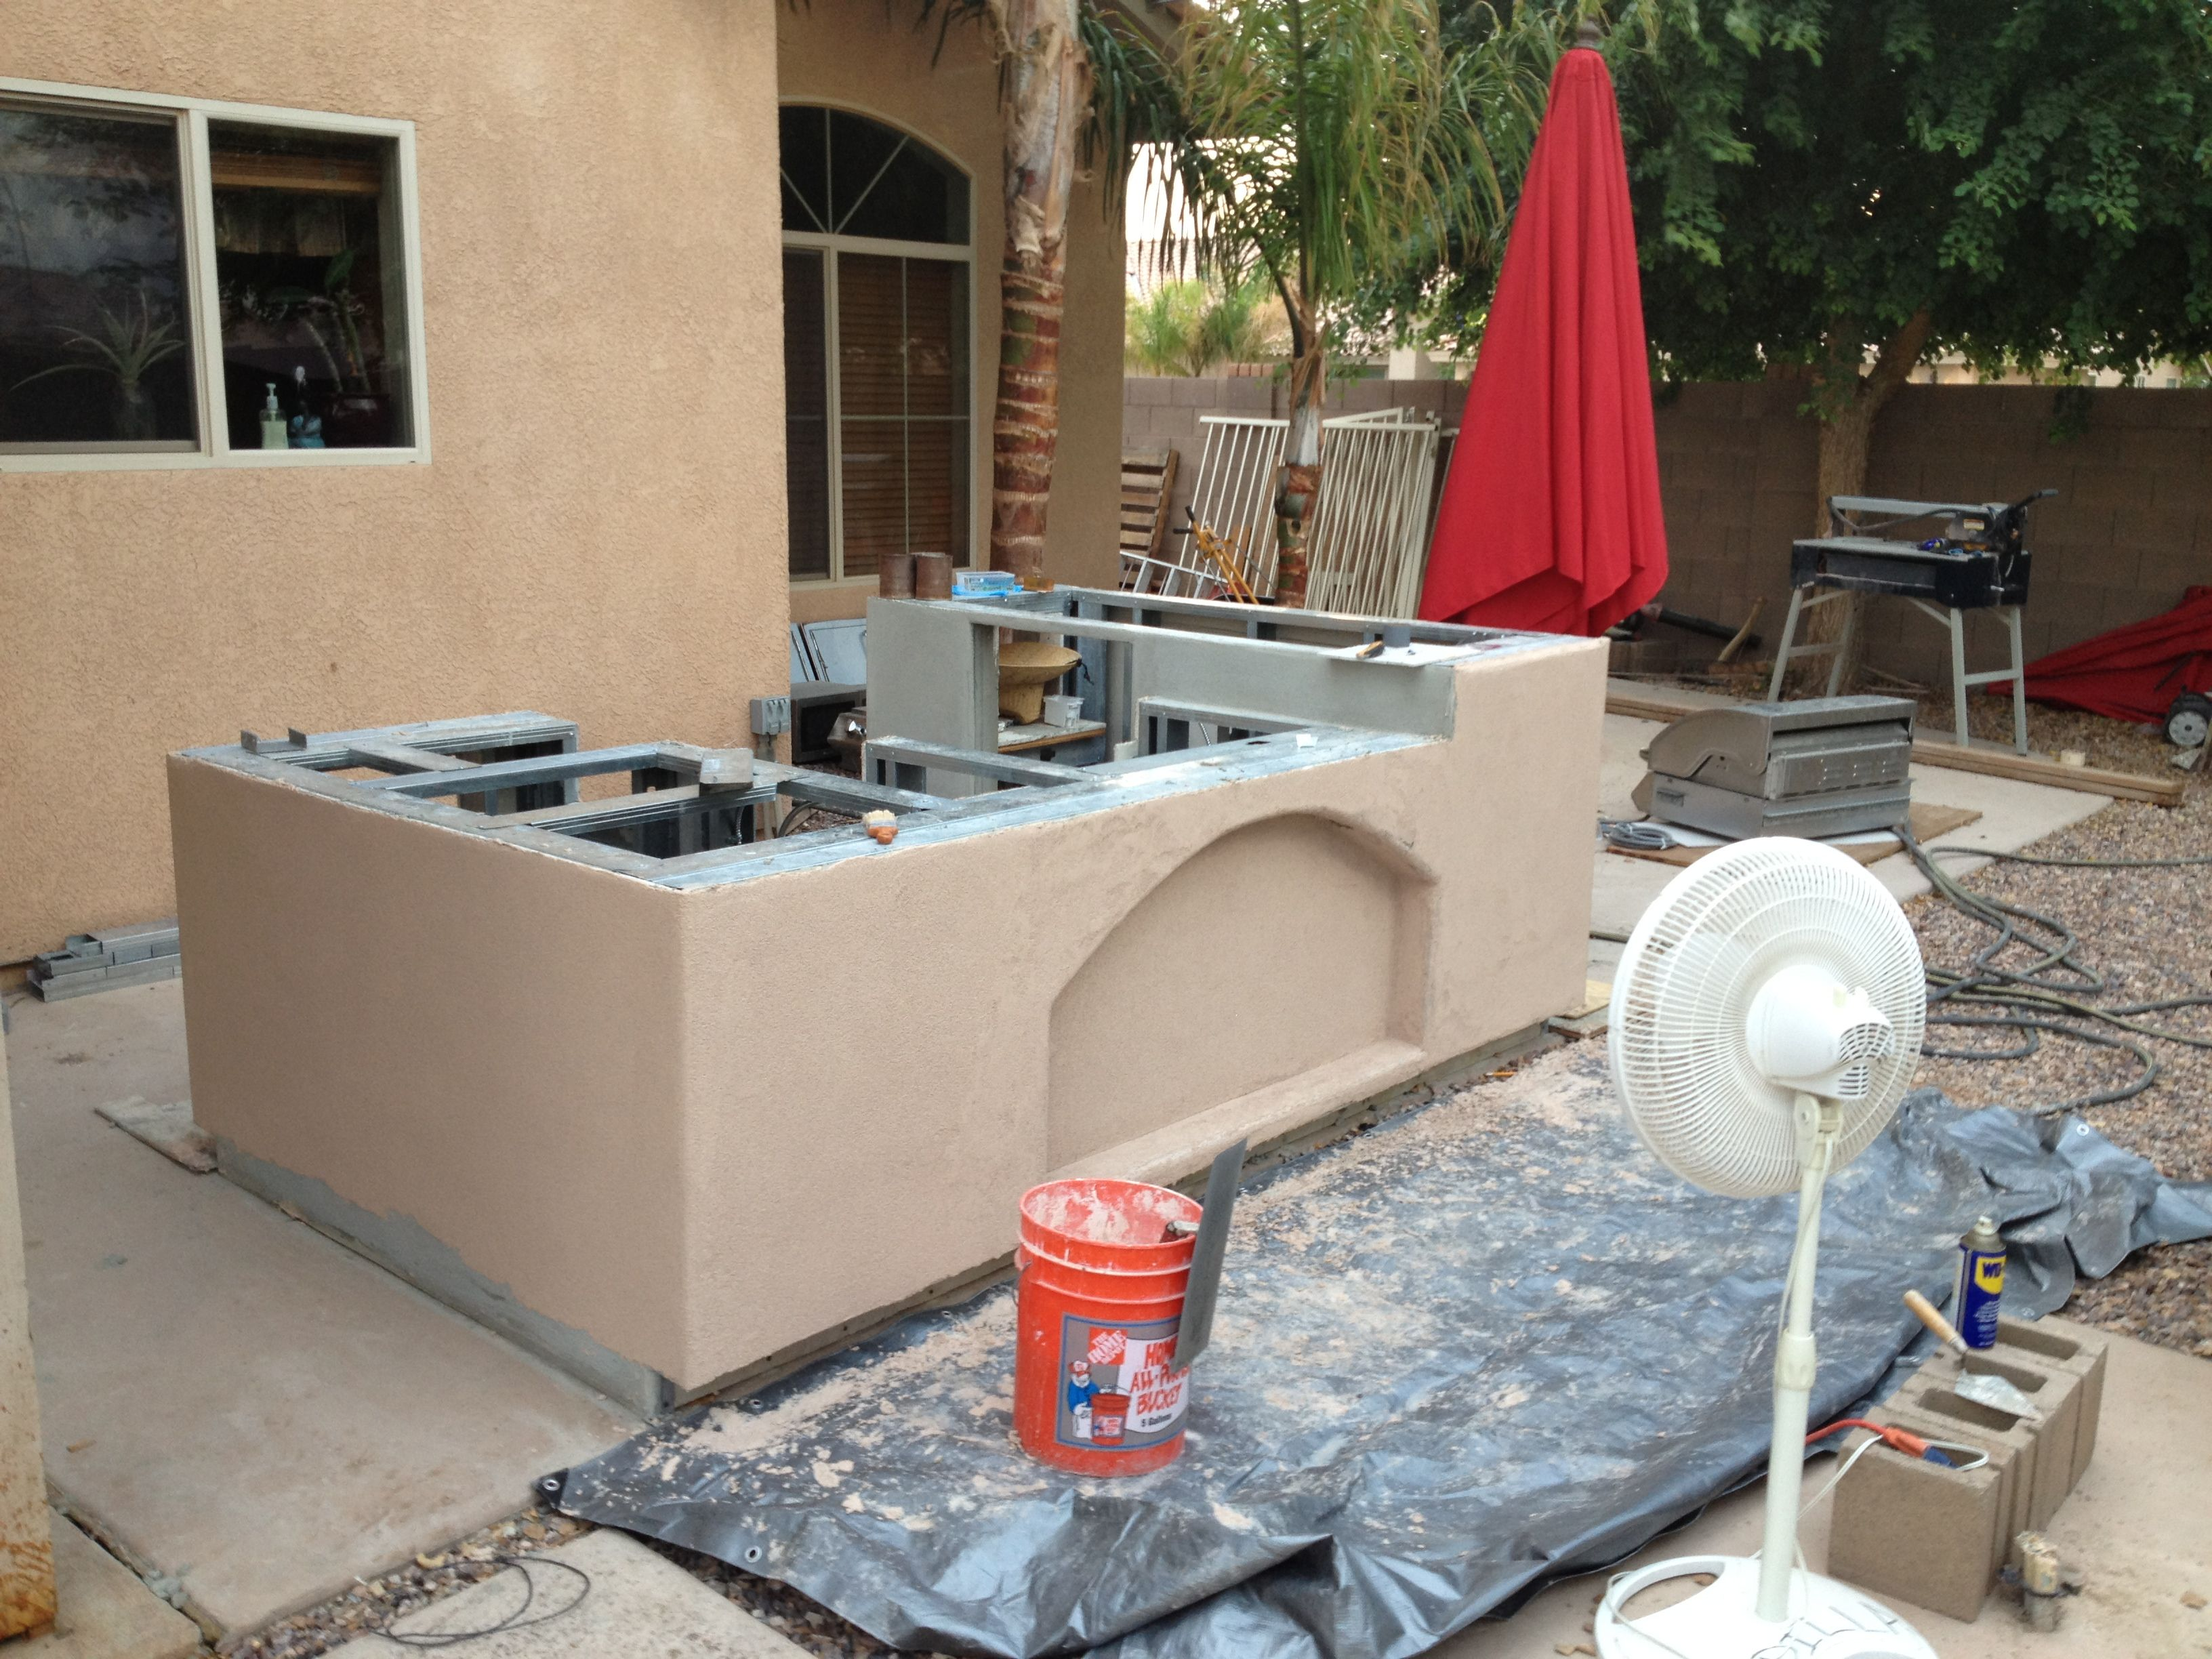 Synthetic stucco used on an outdoor kitchen | DIY | Pinterest ...